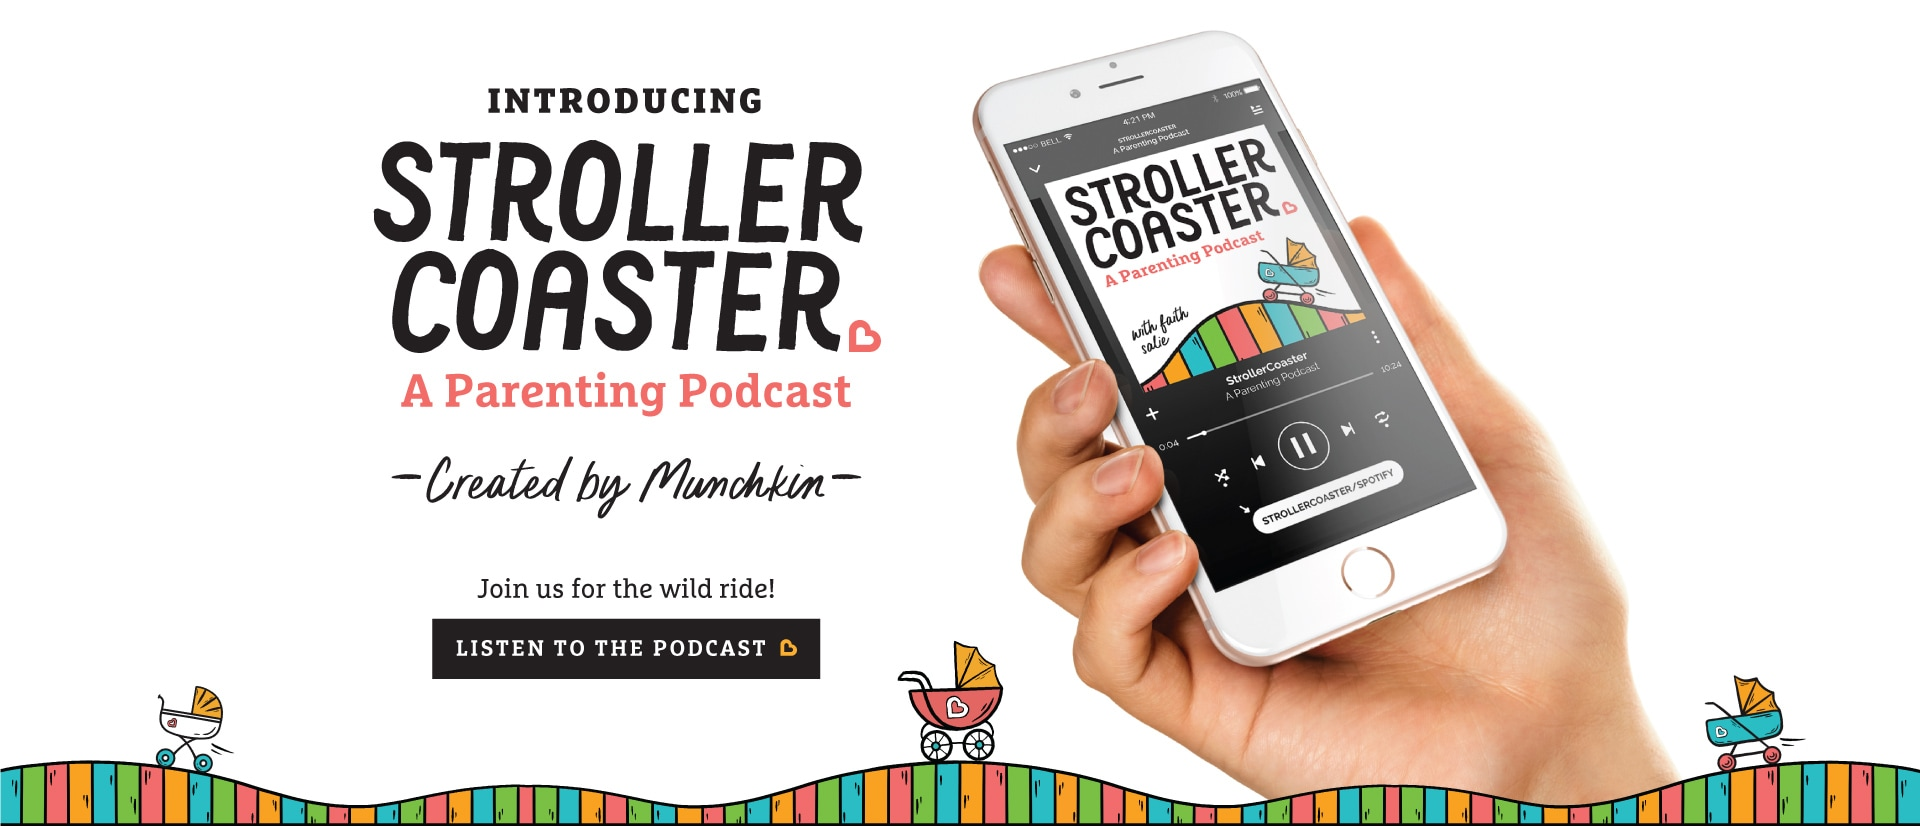 Introducing StrollerCoaster: A Parenting Podcast